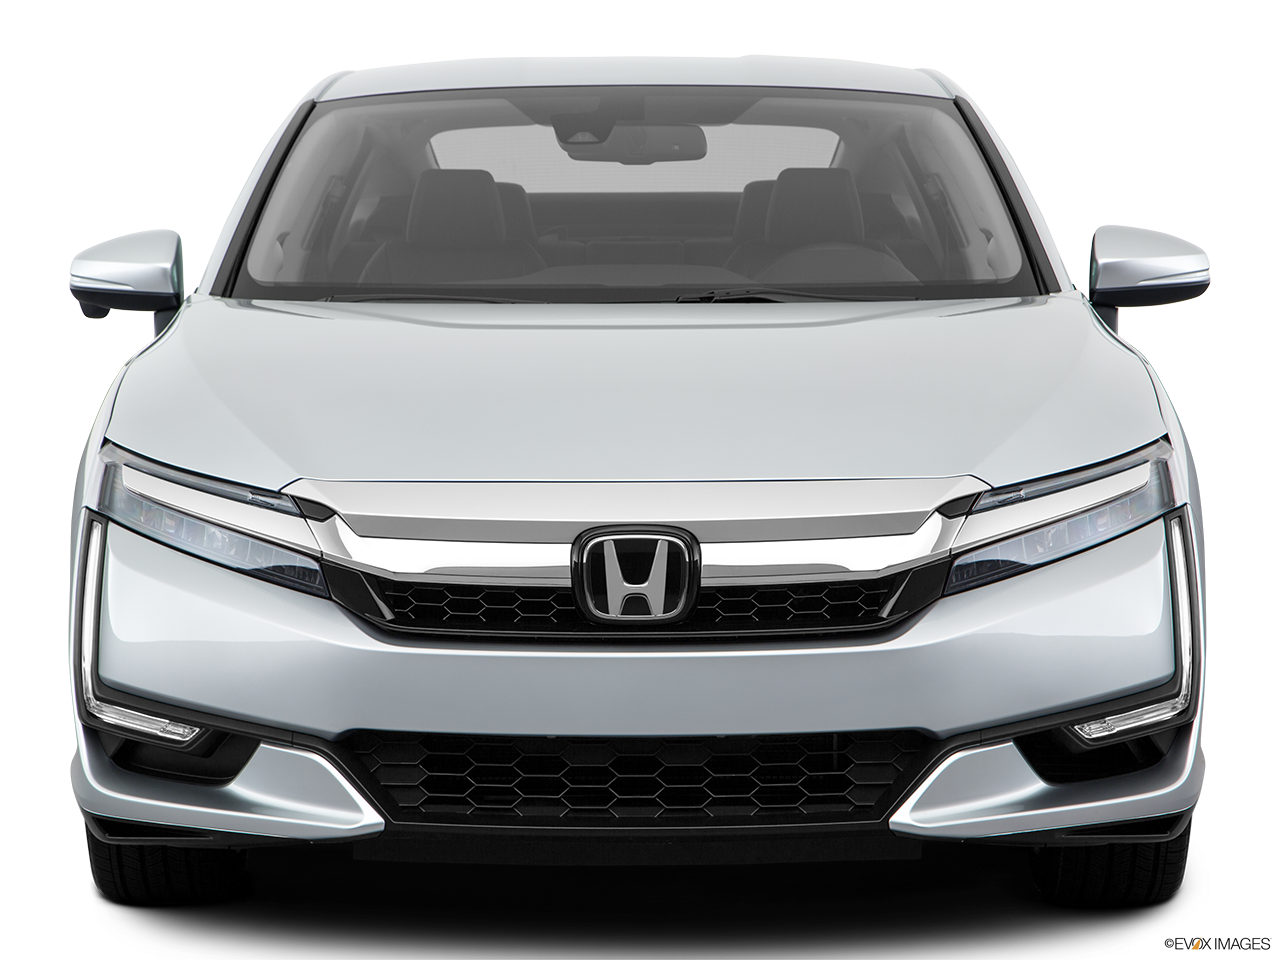 Front view of the Honda Clarity Plug-In Hybrid